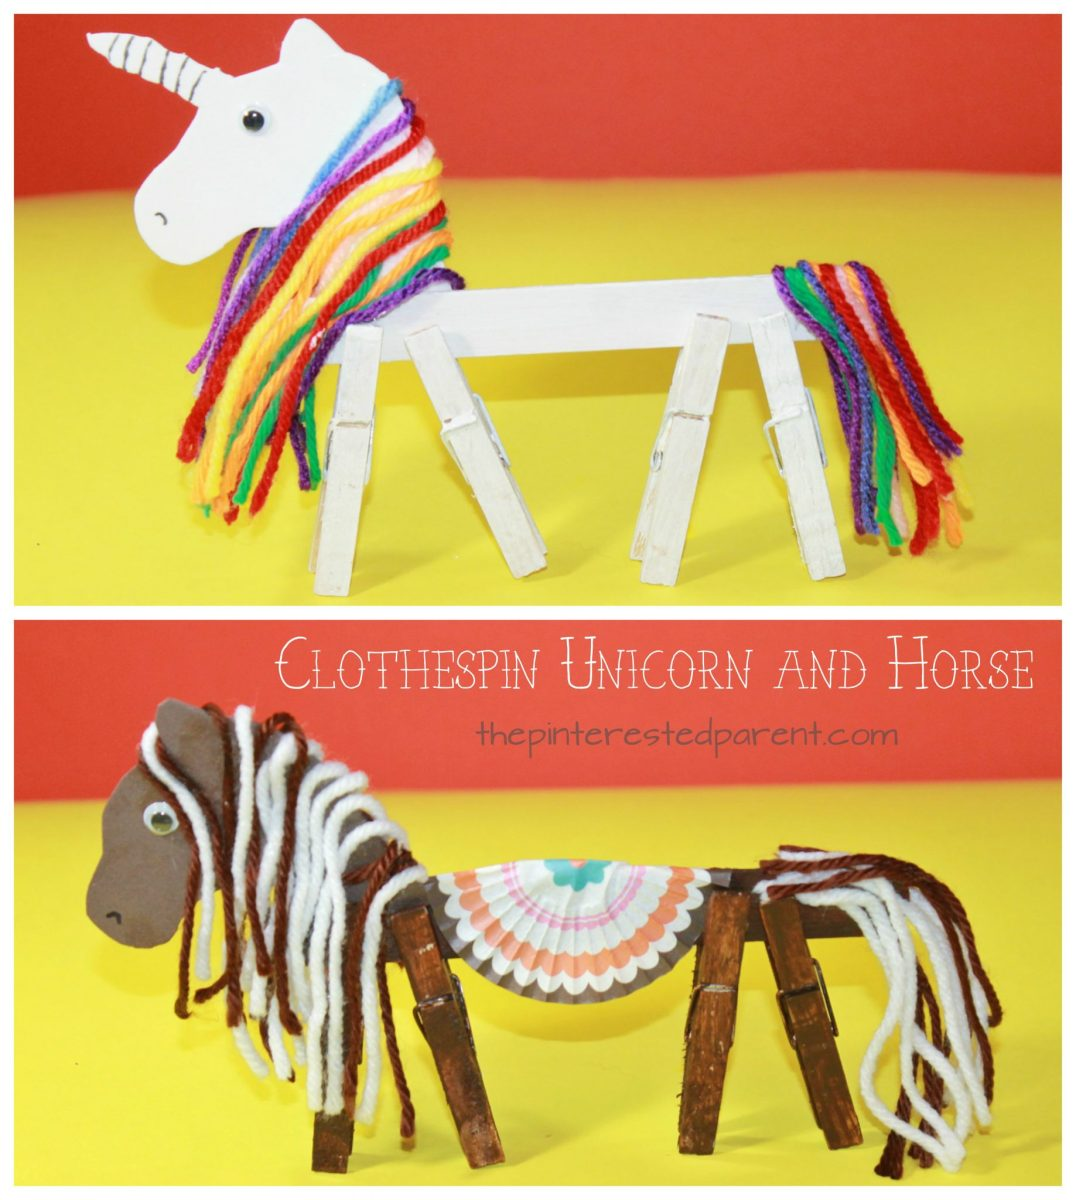 Clothespin Horse Unicorn